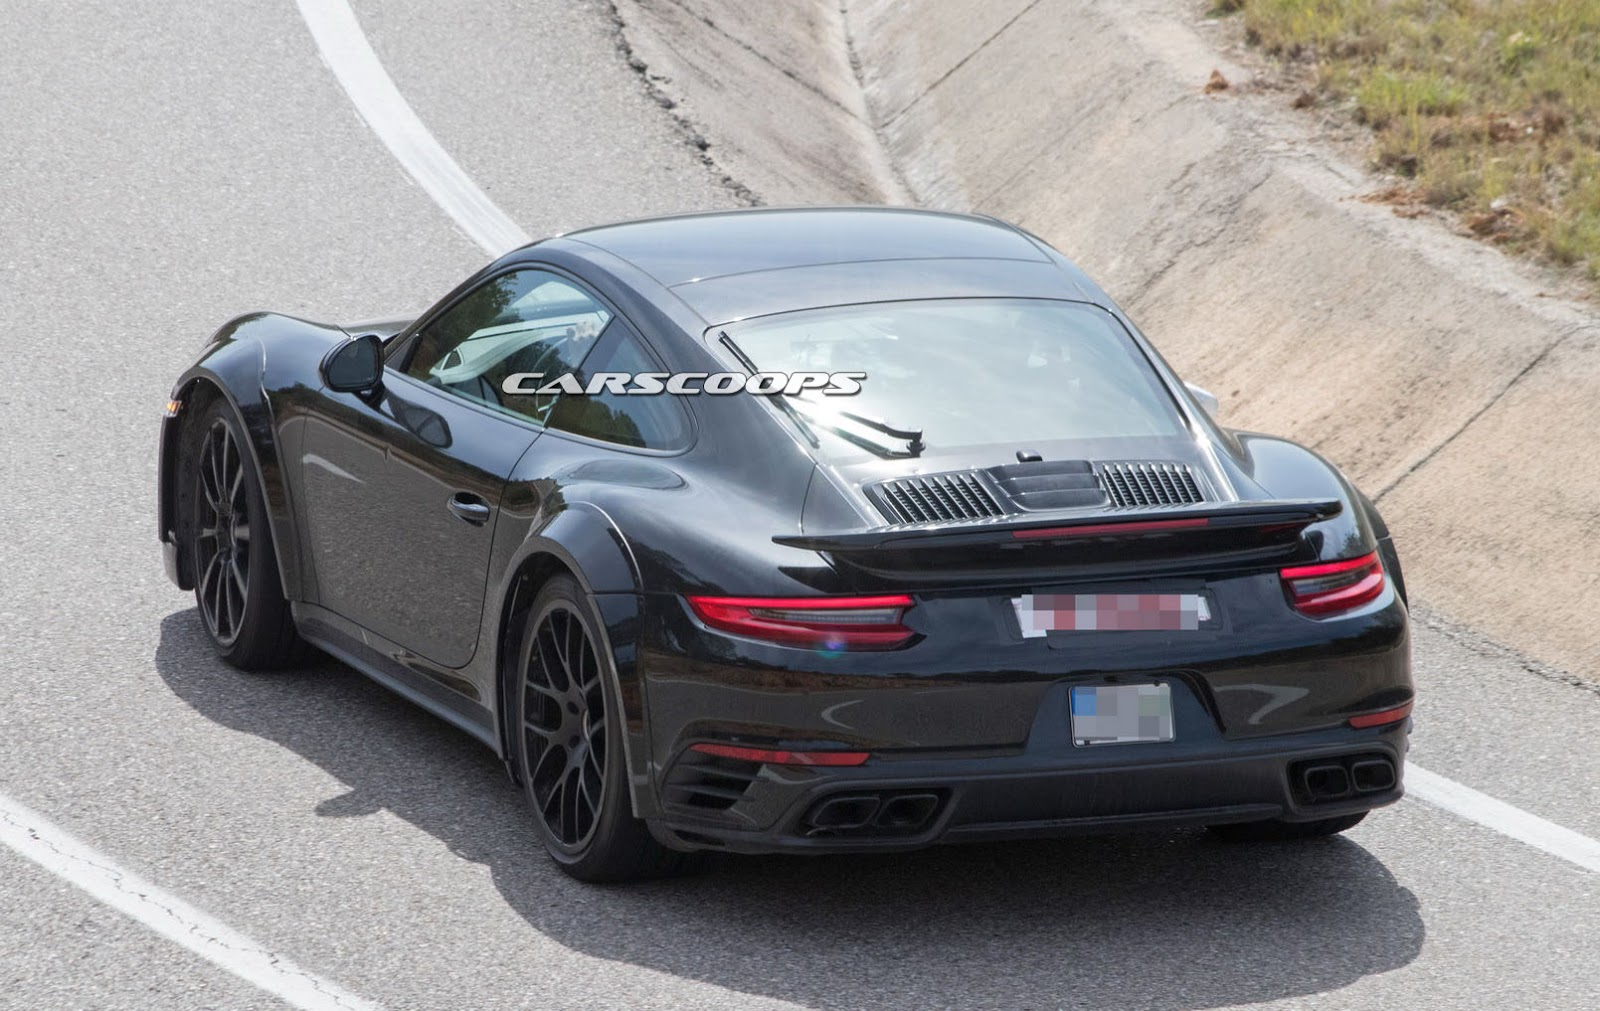 next gen porsche 911 turbo s could have 630 hp carscoops. Black Bedroom Furniture Sets. Home Design Ideas